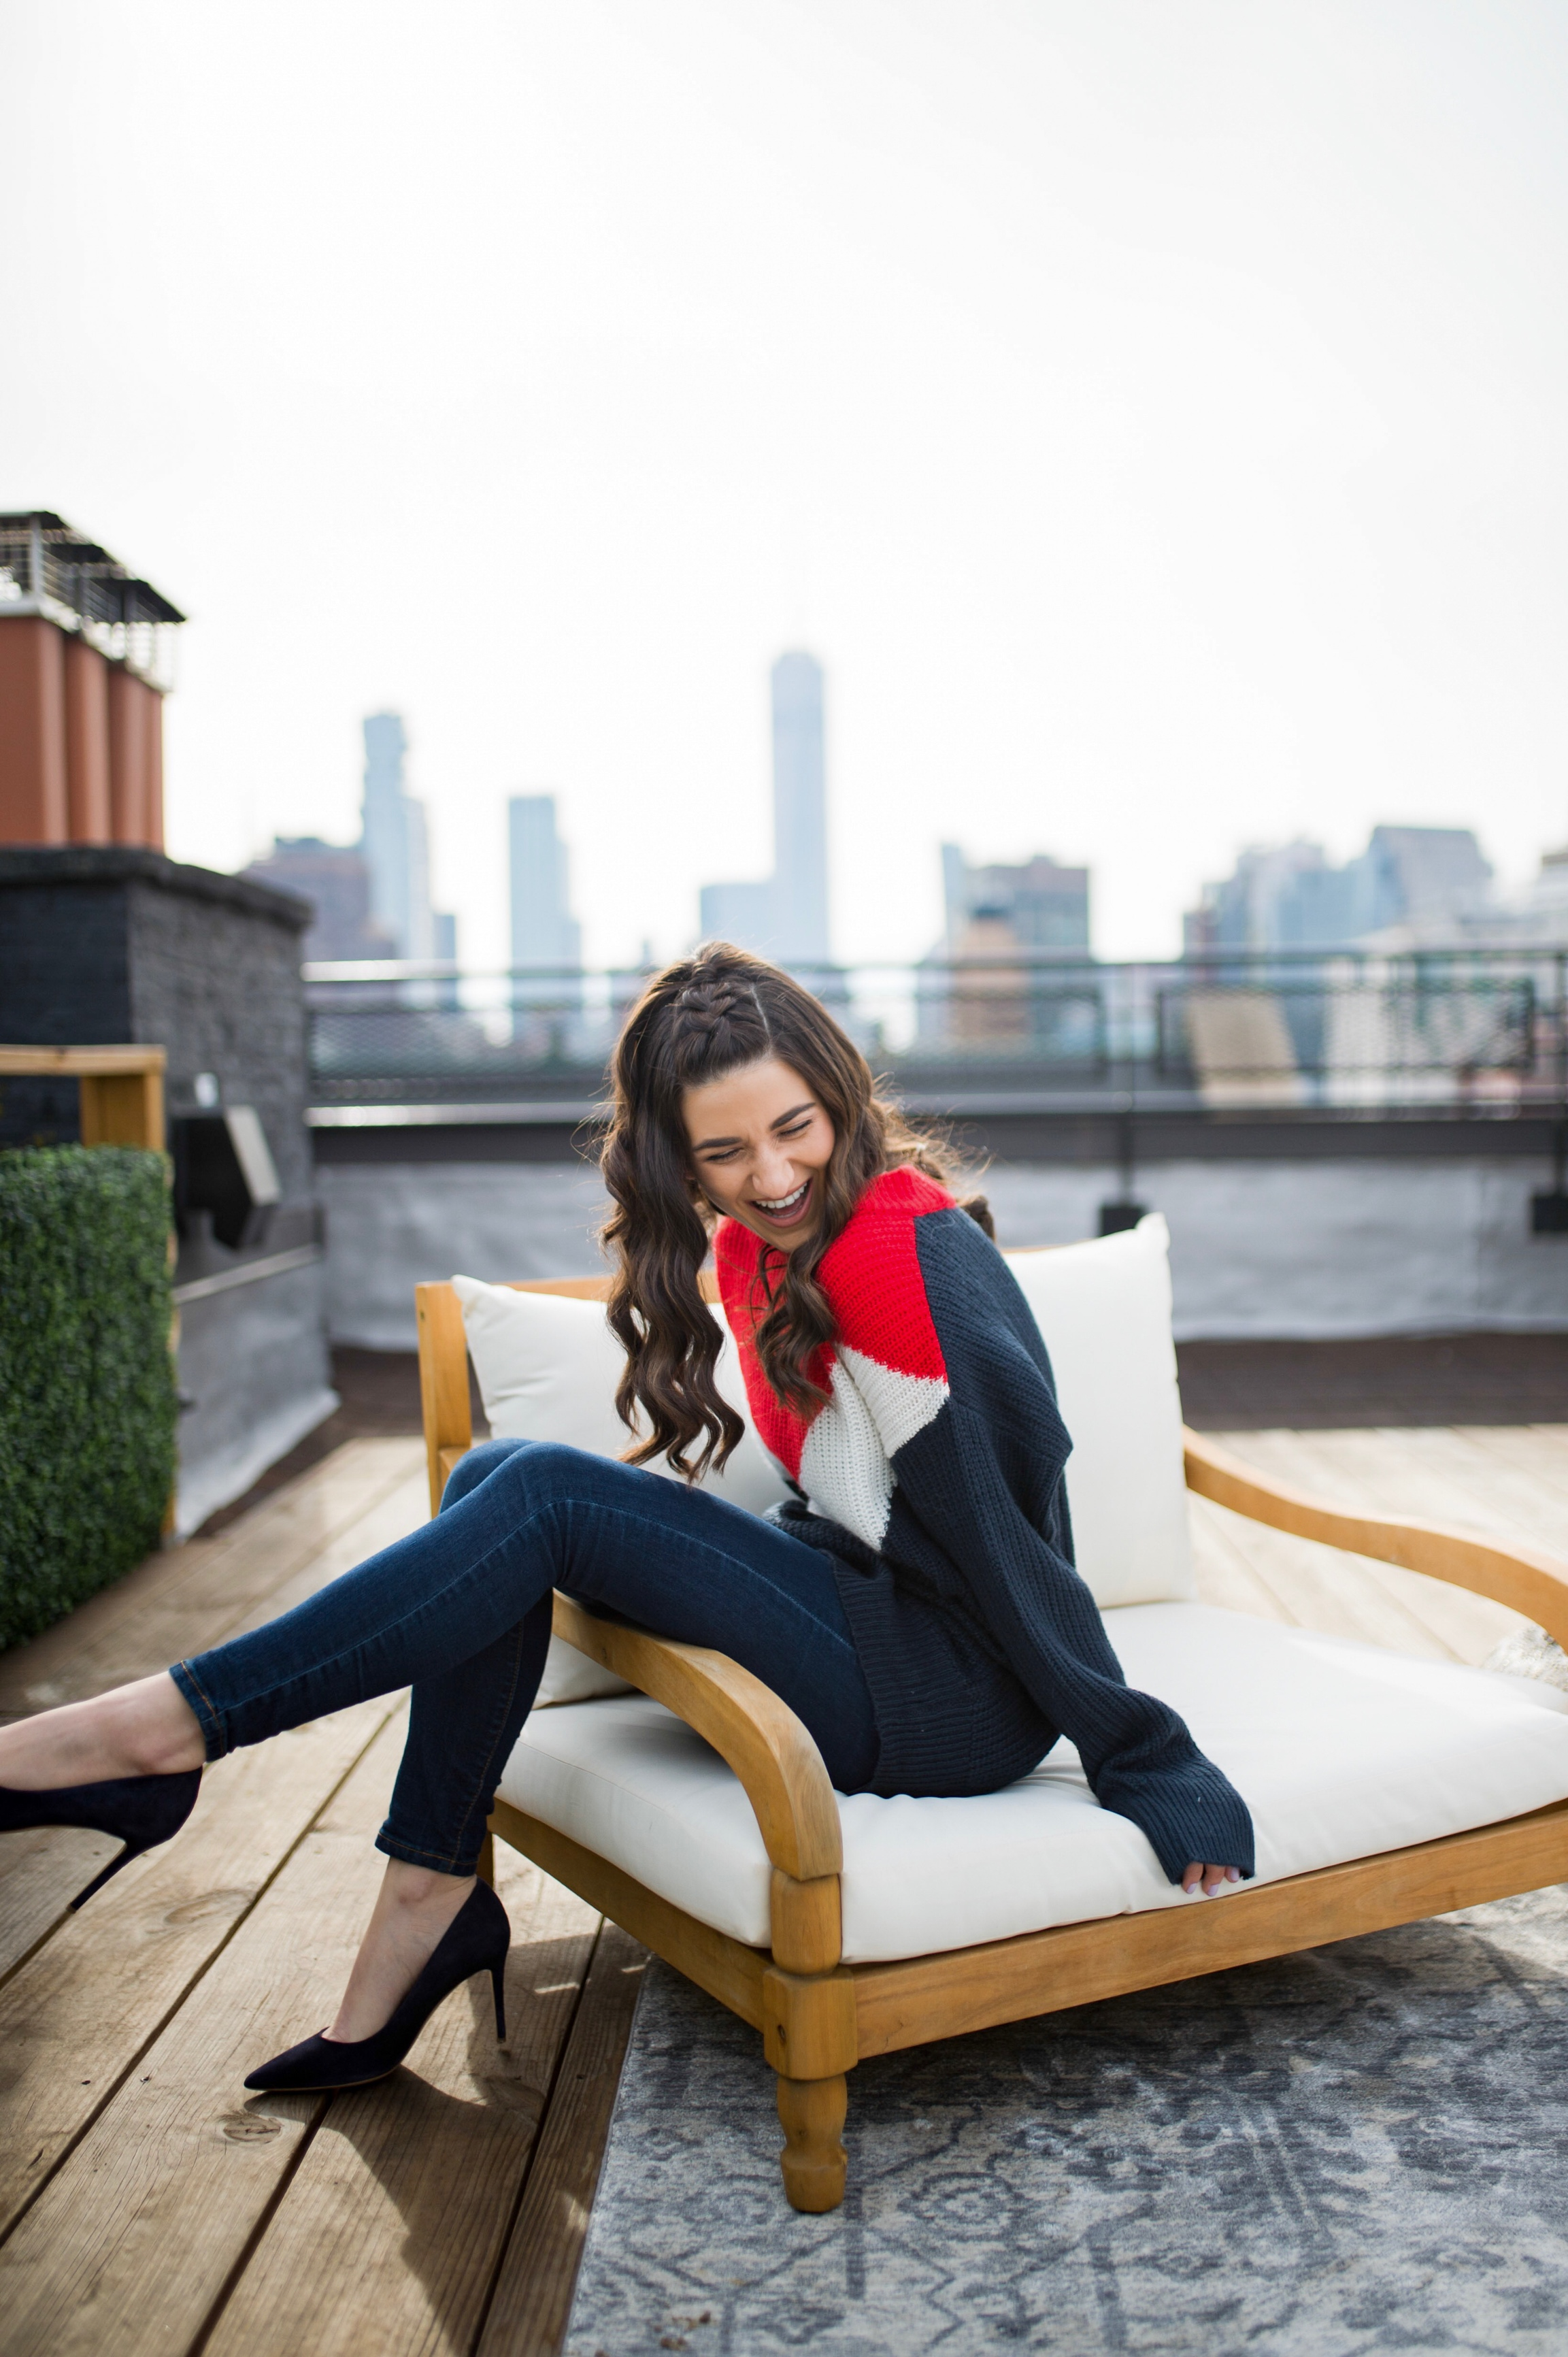 Advice For The Micro-influencer Oversized Sweater Navy Heels Esther Santer Fashion Blog NYC Street Style Blogger Outfit OOTD Trendy Shopping Subtle Balayage Highlights Hair Jeans Sally Hershberger Girl How To Wear Red White Blue Winter Women 2018 Chic.jpg